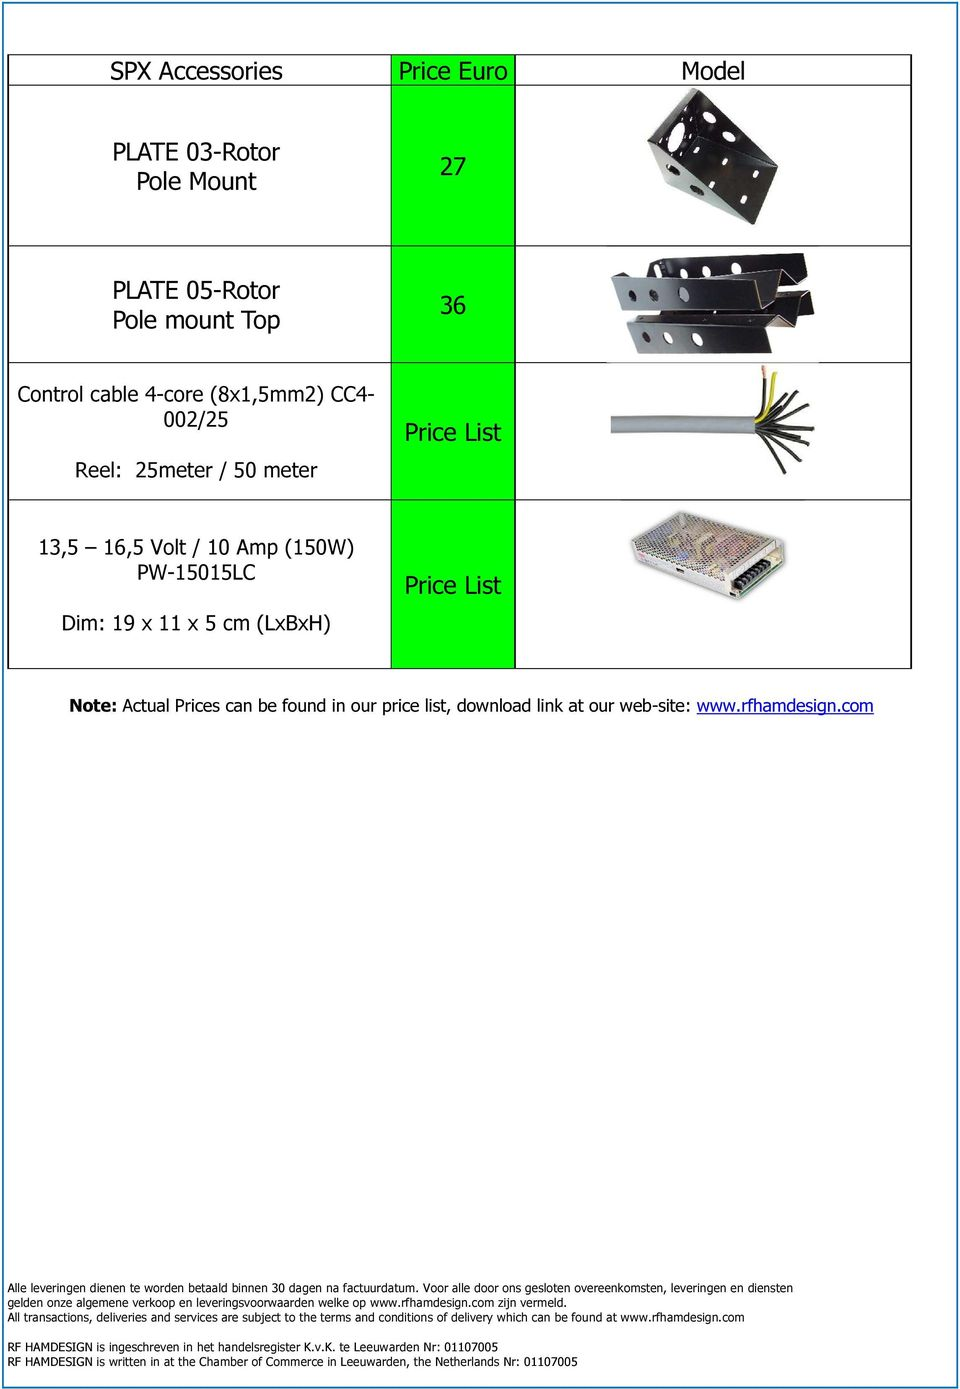 16,5 Volt / 10 Amp (150W) PW-15015LC Dim: 19 x 11 x 5 cm (LxBxH) Price List Note: Actual